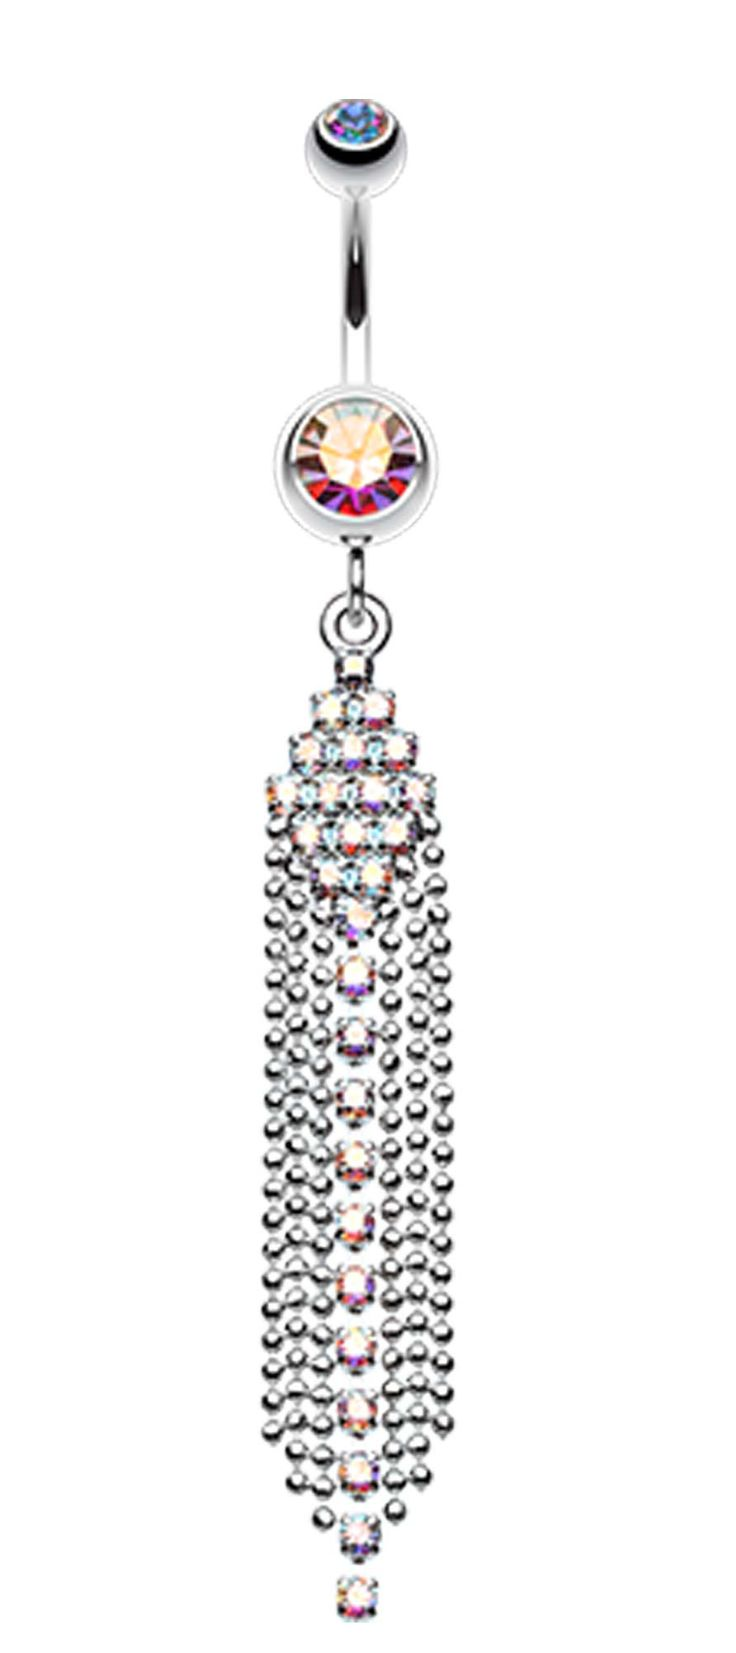 Sparkle Showers Belly Button Ring - 14 GA (1.6mm) - Light Pink - Sold Individually